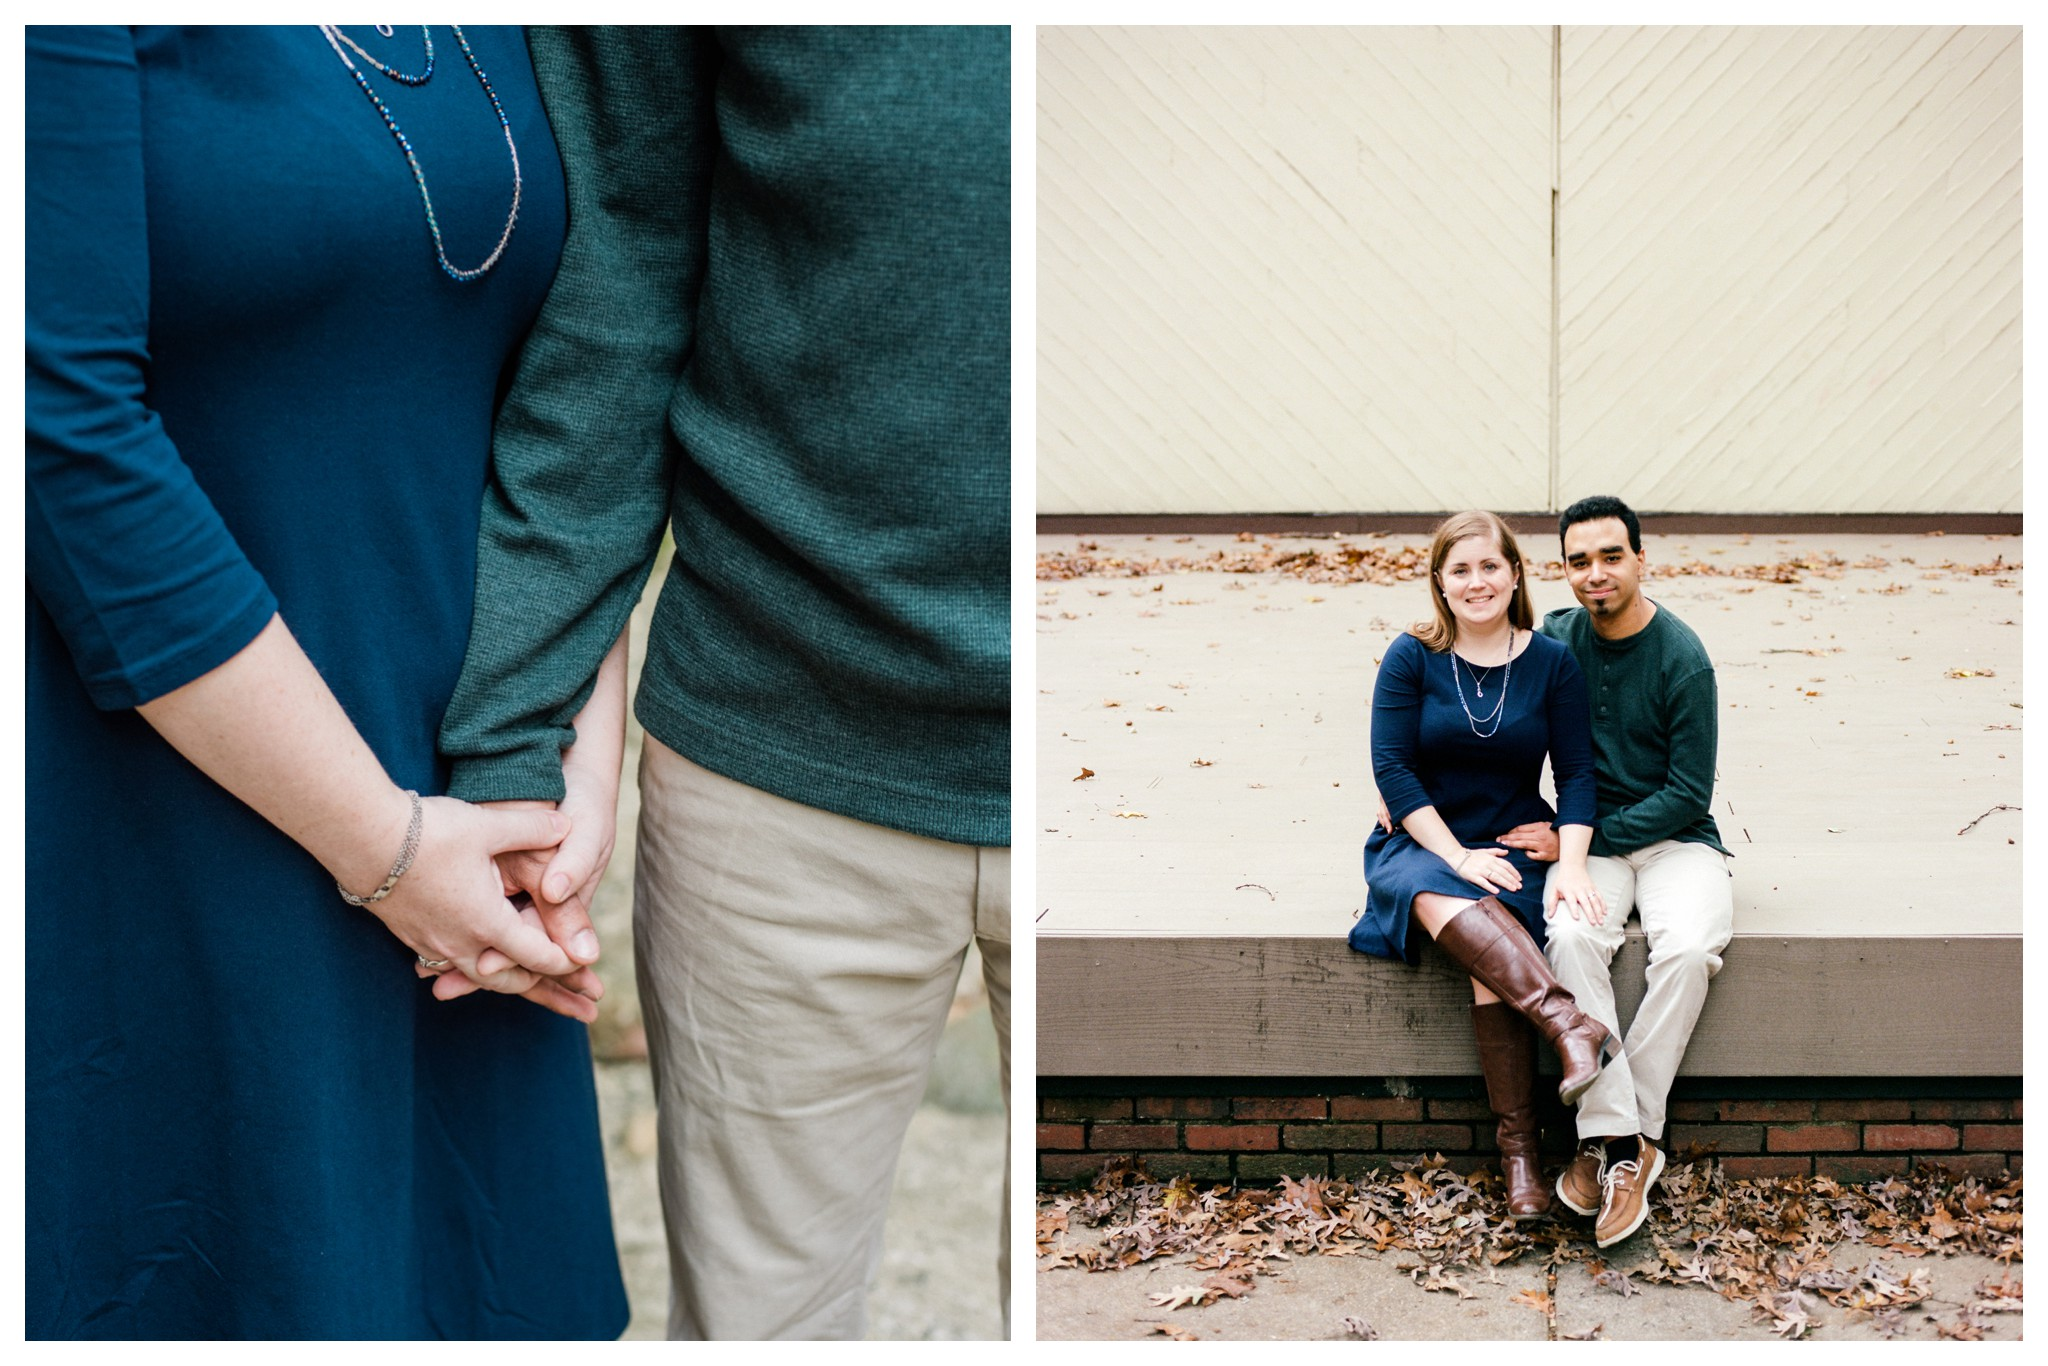 Fall Engagement Session in the Woods in Arlington, Virginia by fine art wedding photographer Lissa Ryan Photography